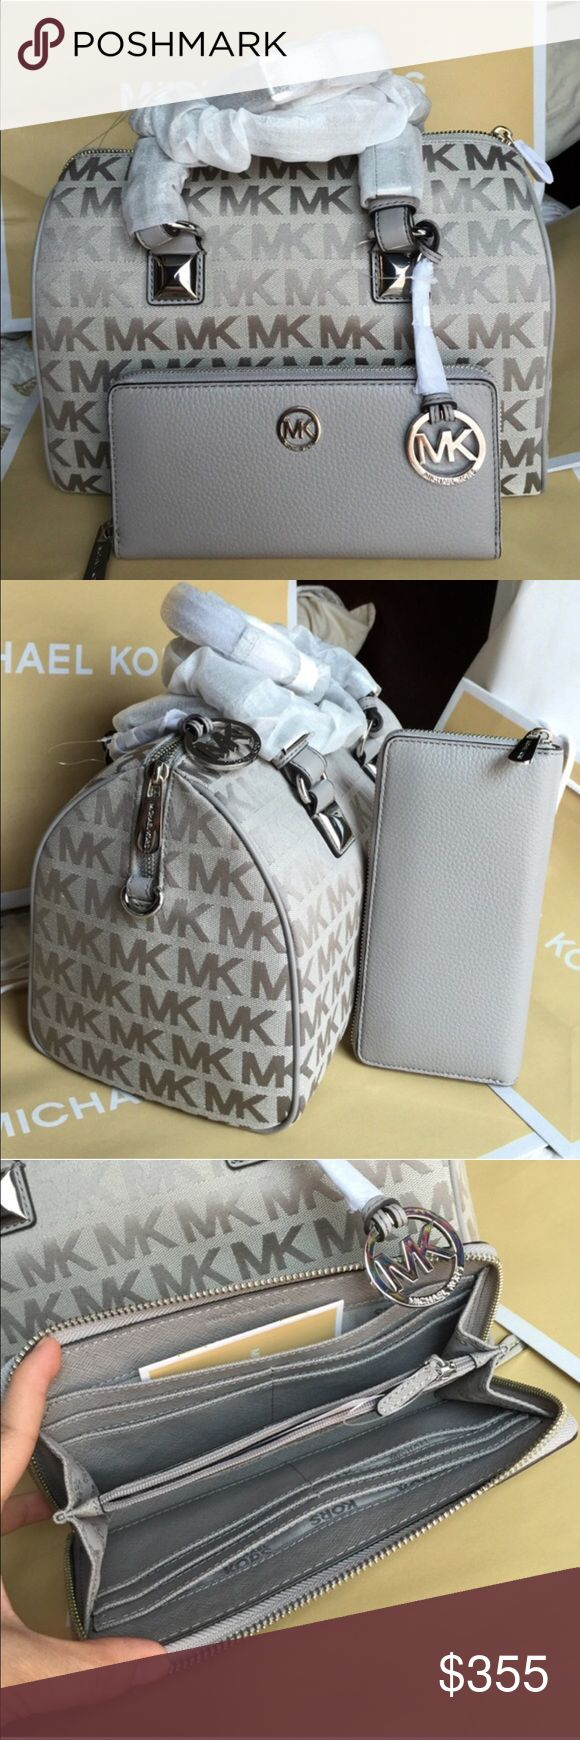 Michael Kors Purse Wallet 100% Authentic Michael Kors Purse, and Wallet both brand new with tag!Grey color. Michael Kors Bags Crossbody Bags